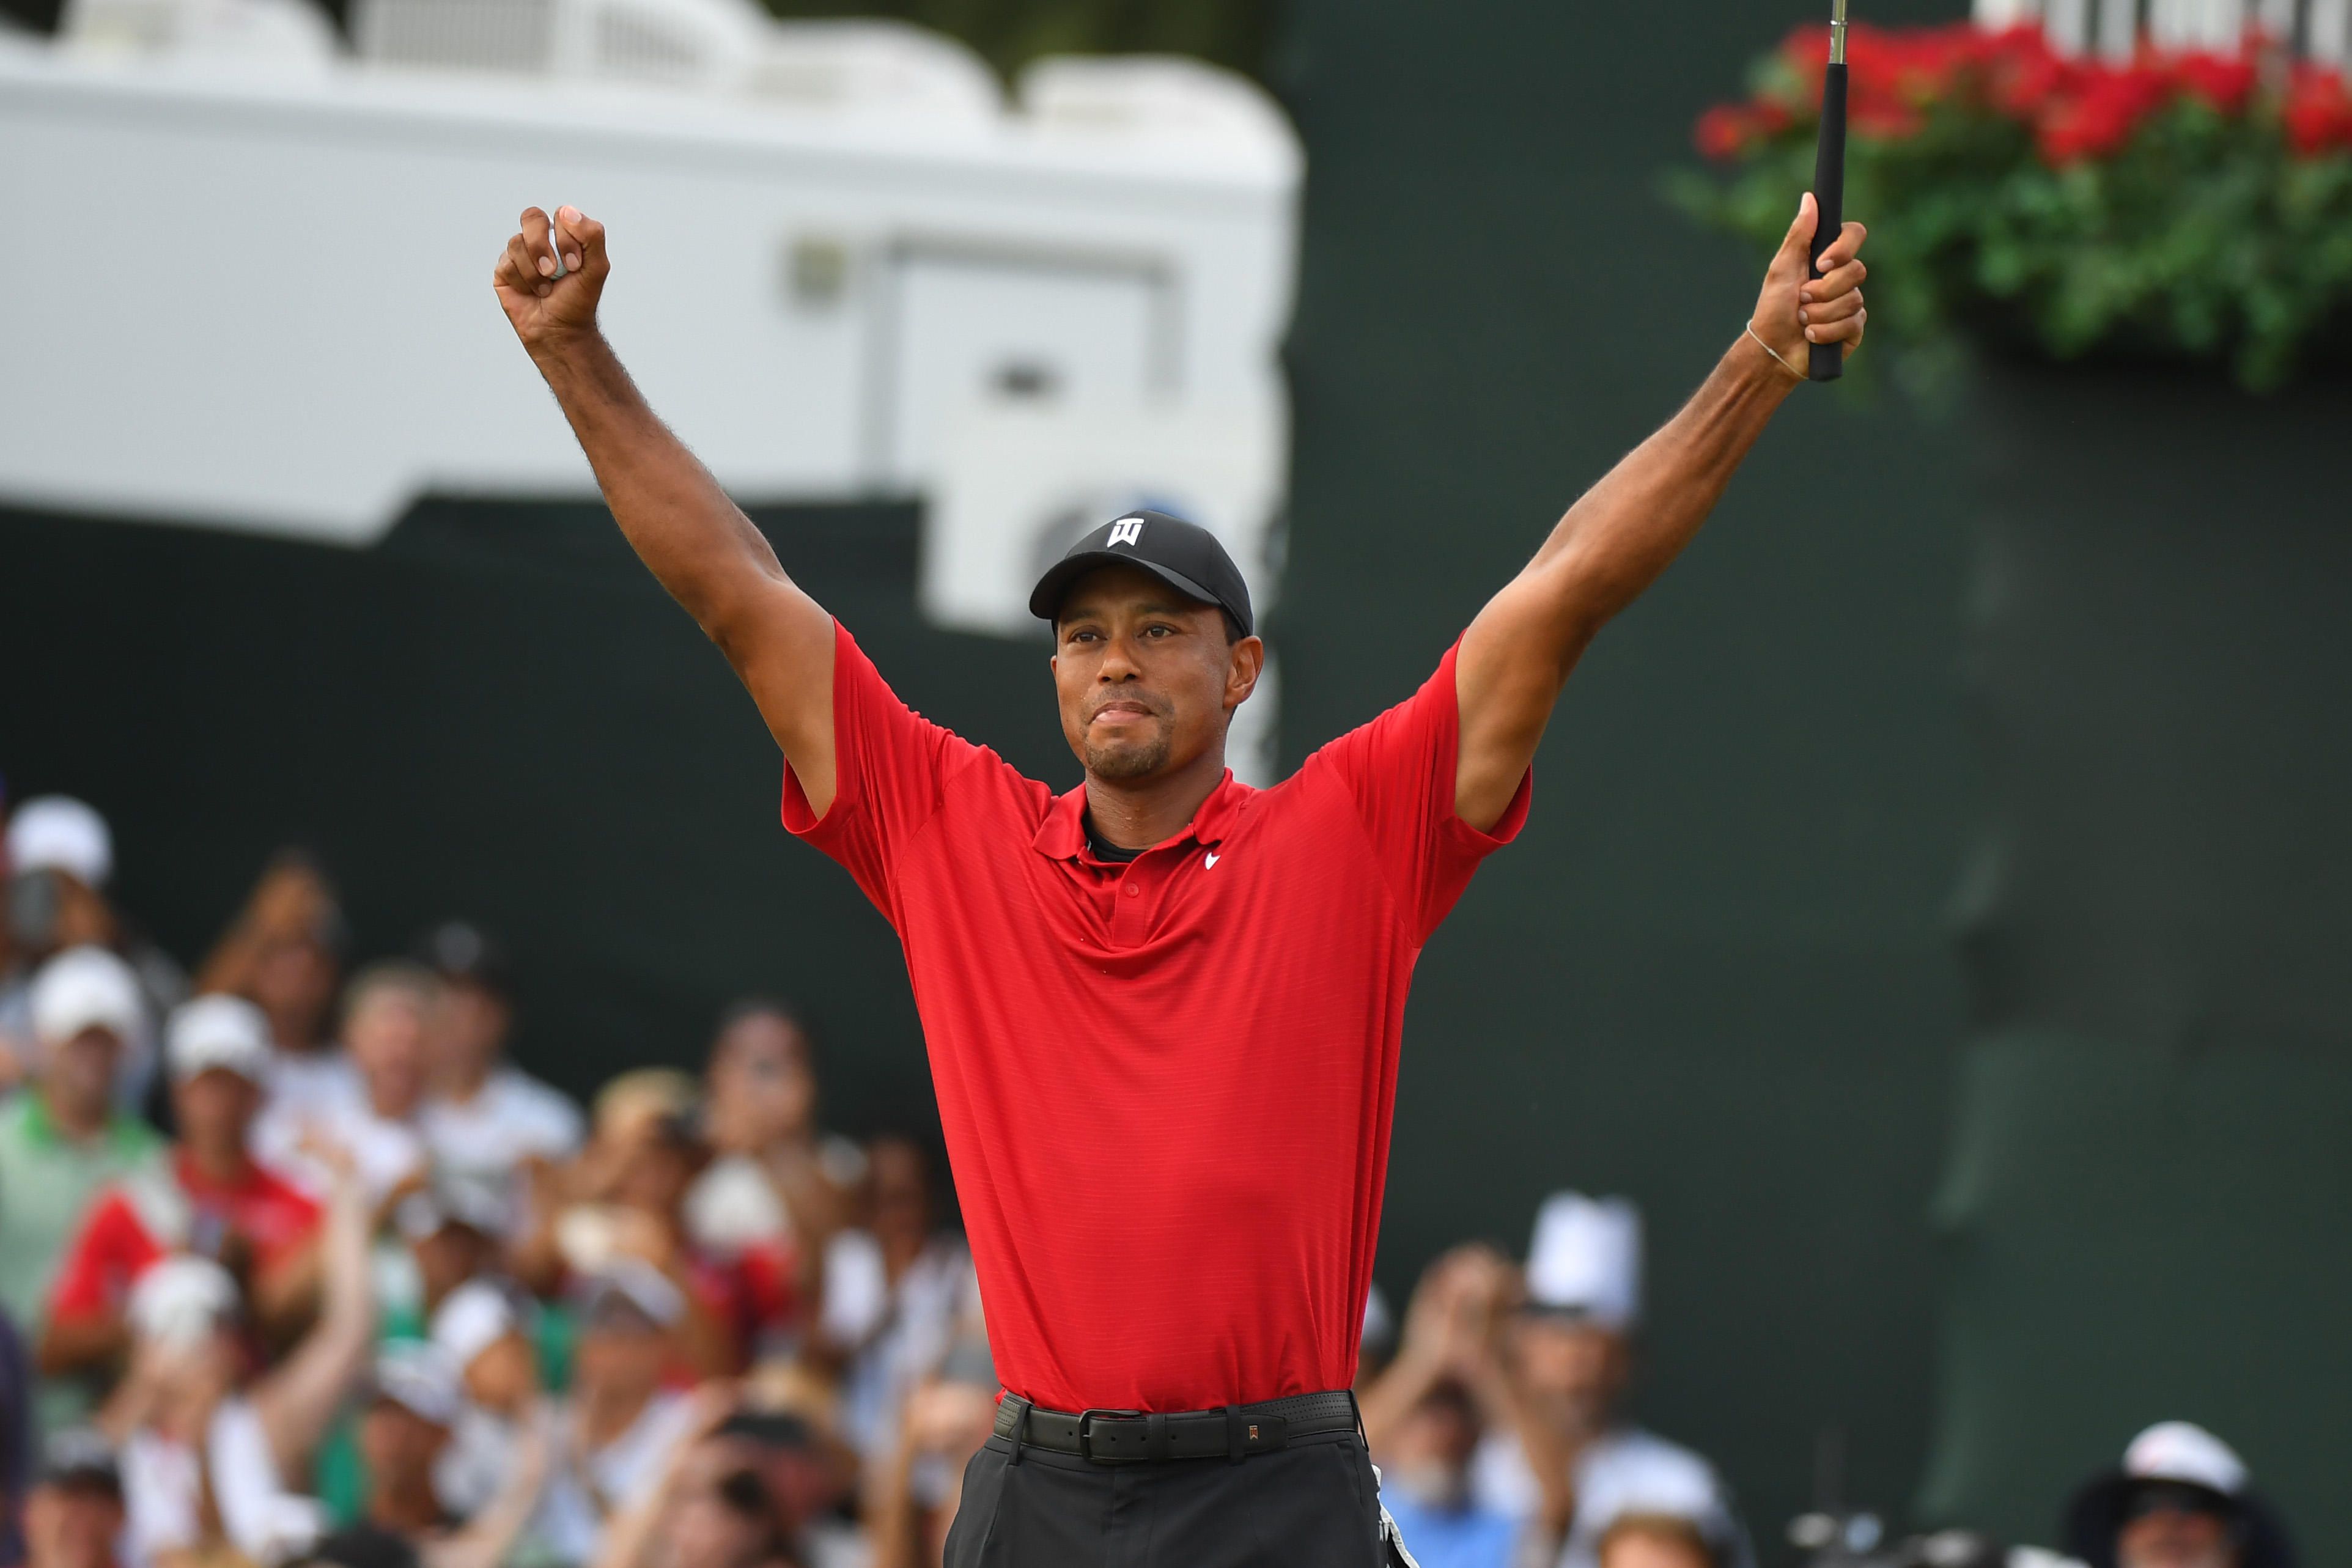 b9a0b463178f3 Tiger Woods gets first win in 5 years at Tour Championship in Atlanta